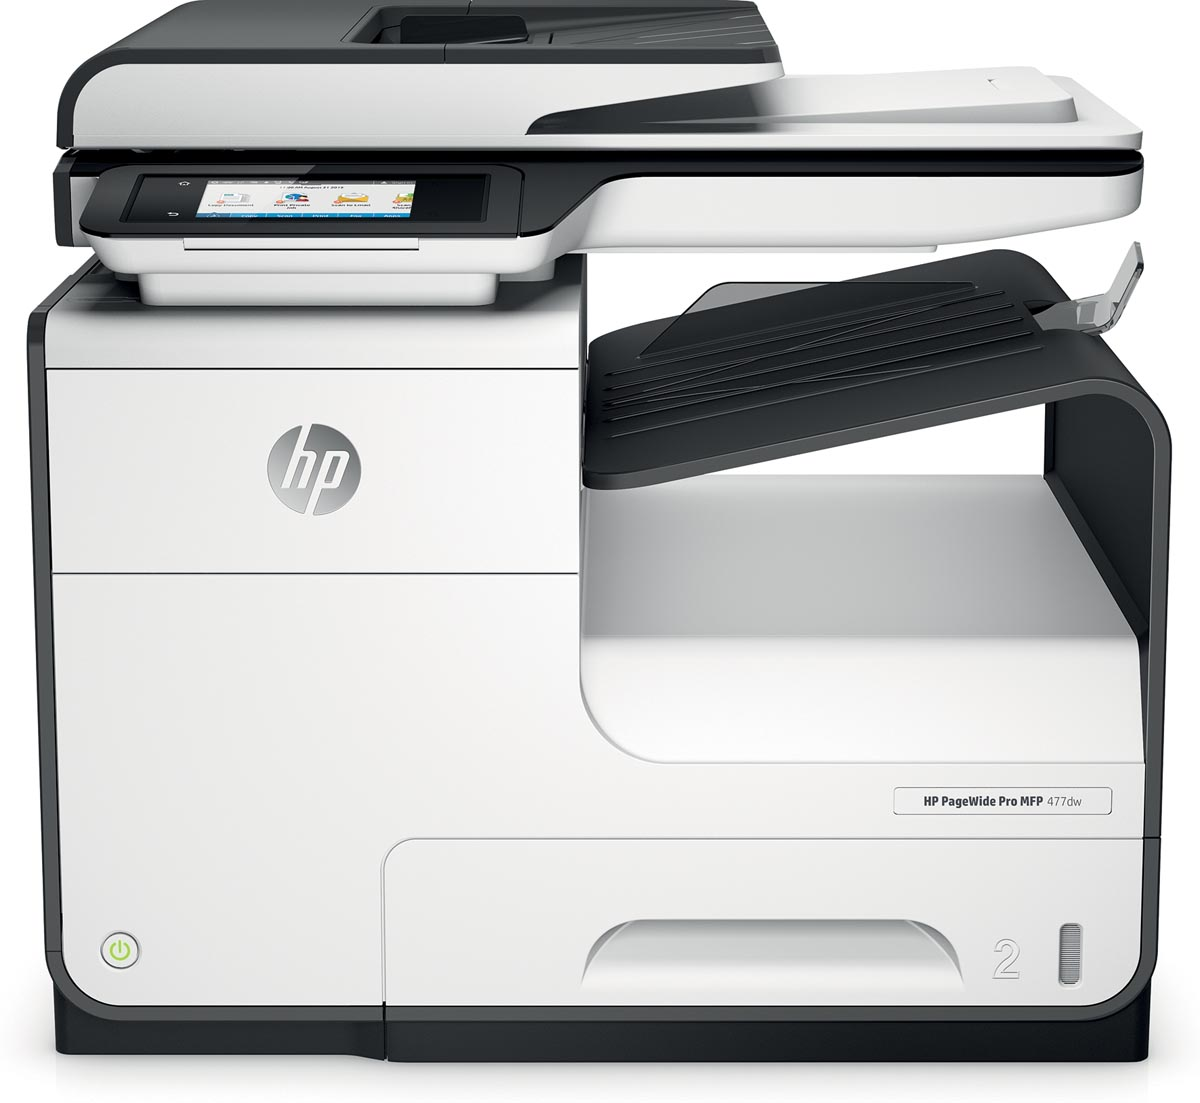 HP printer PageWide Pro 477dw